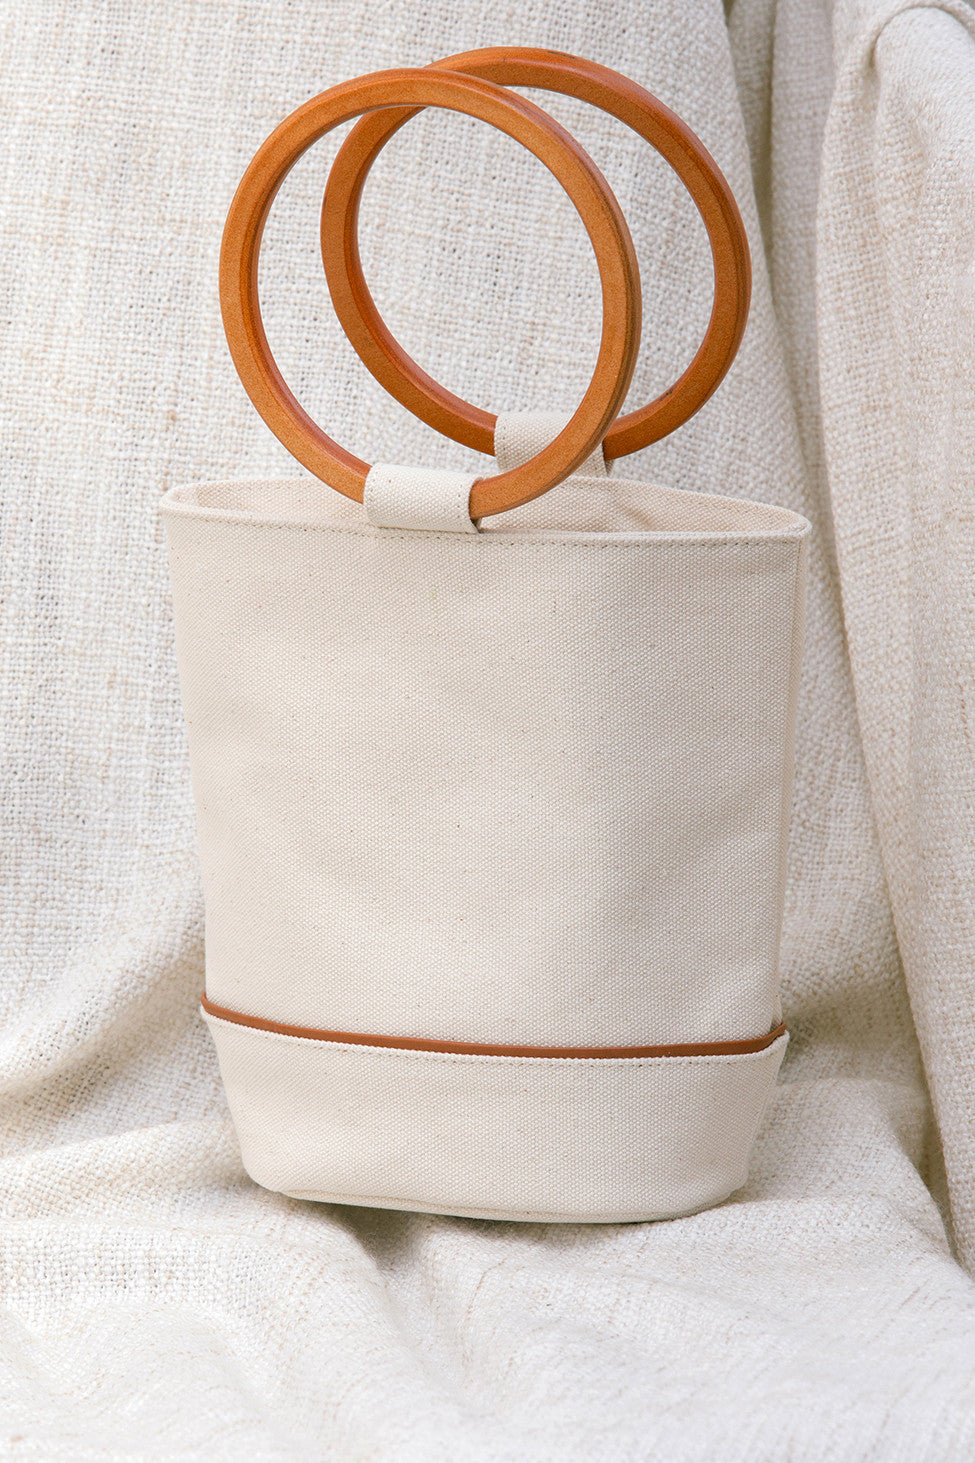 Main compartment with loop closure. Carrying wood handles. Fully lined. Cylindrical design